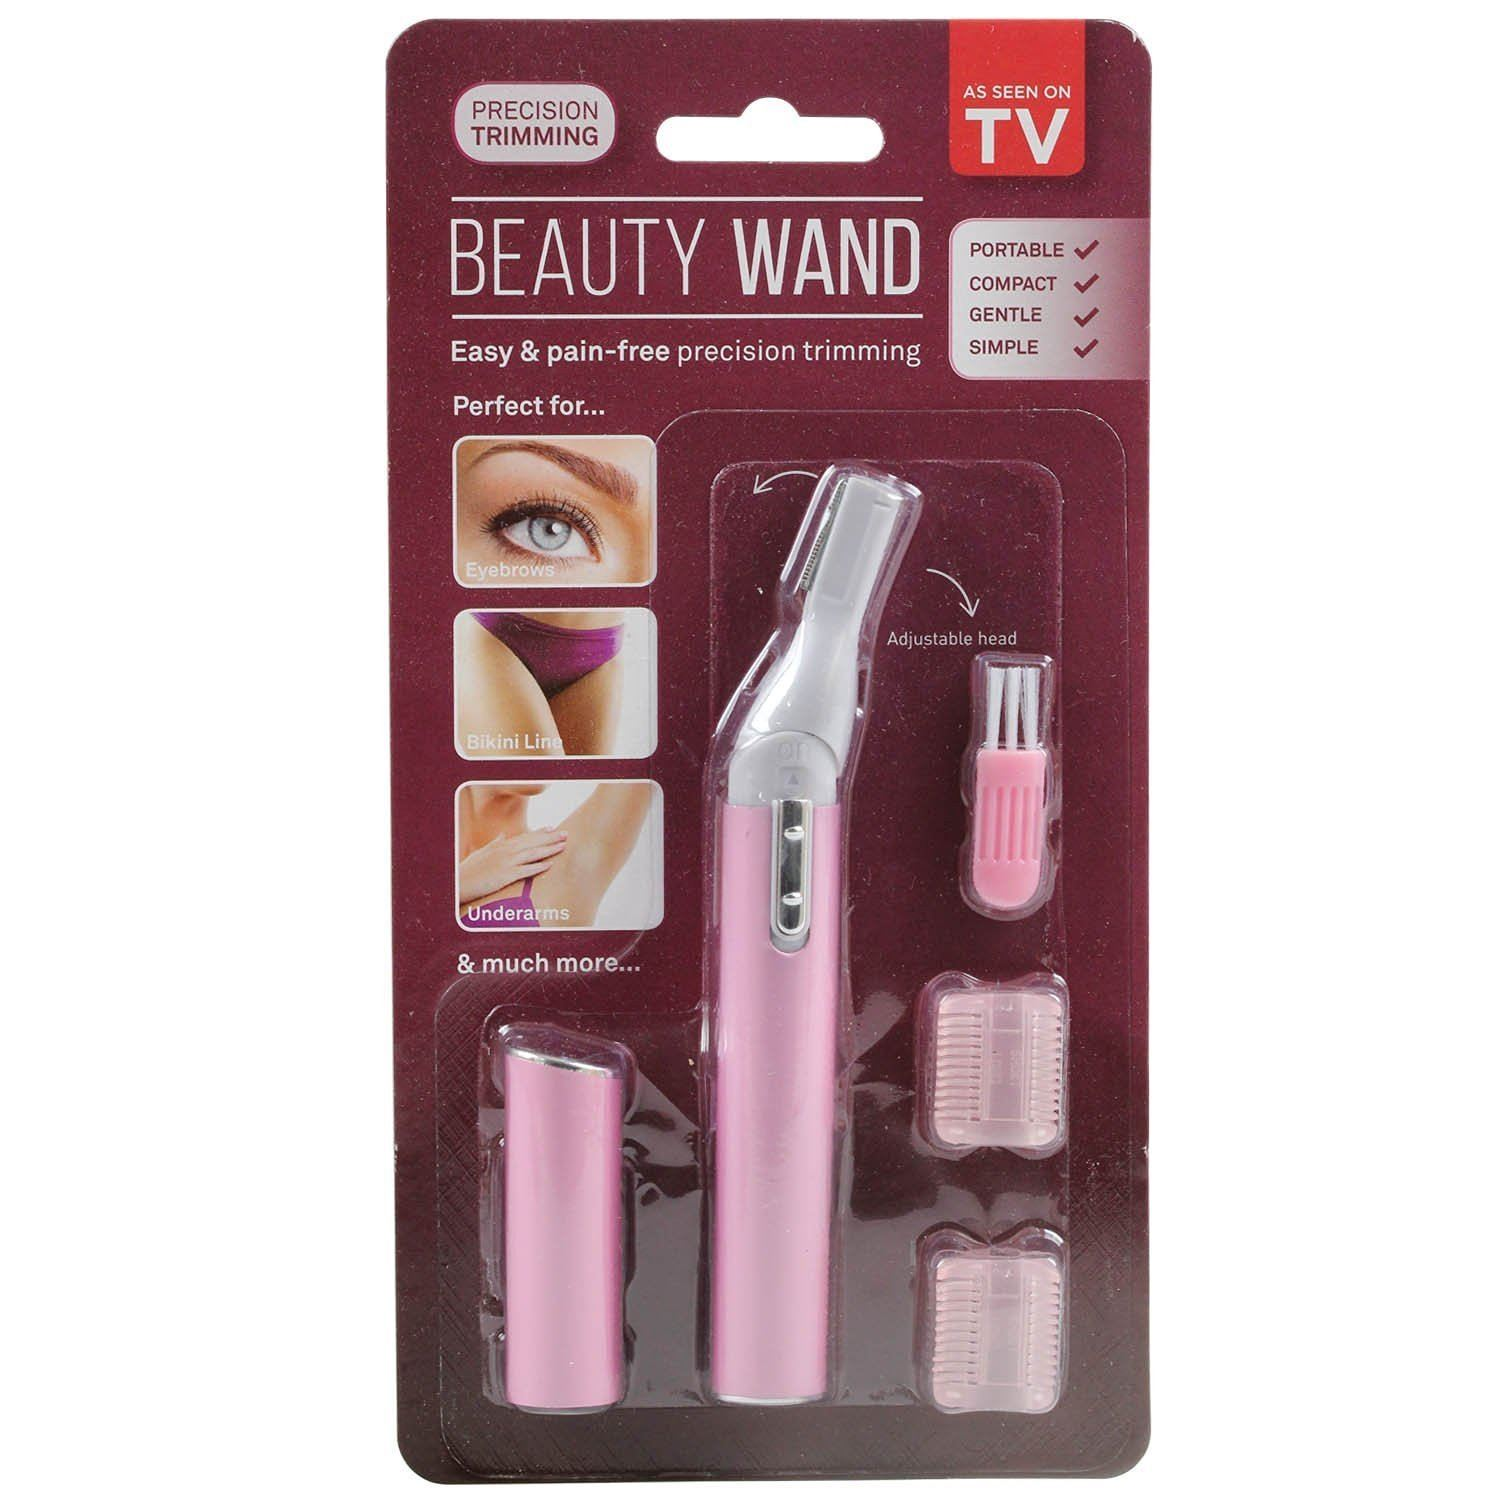 Beauty wand womens personal shaver eyebrow trimmer for Beauty wand